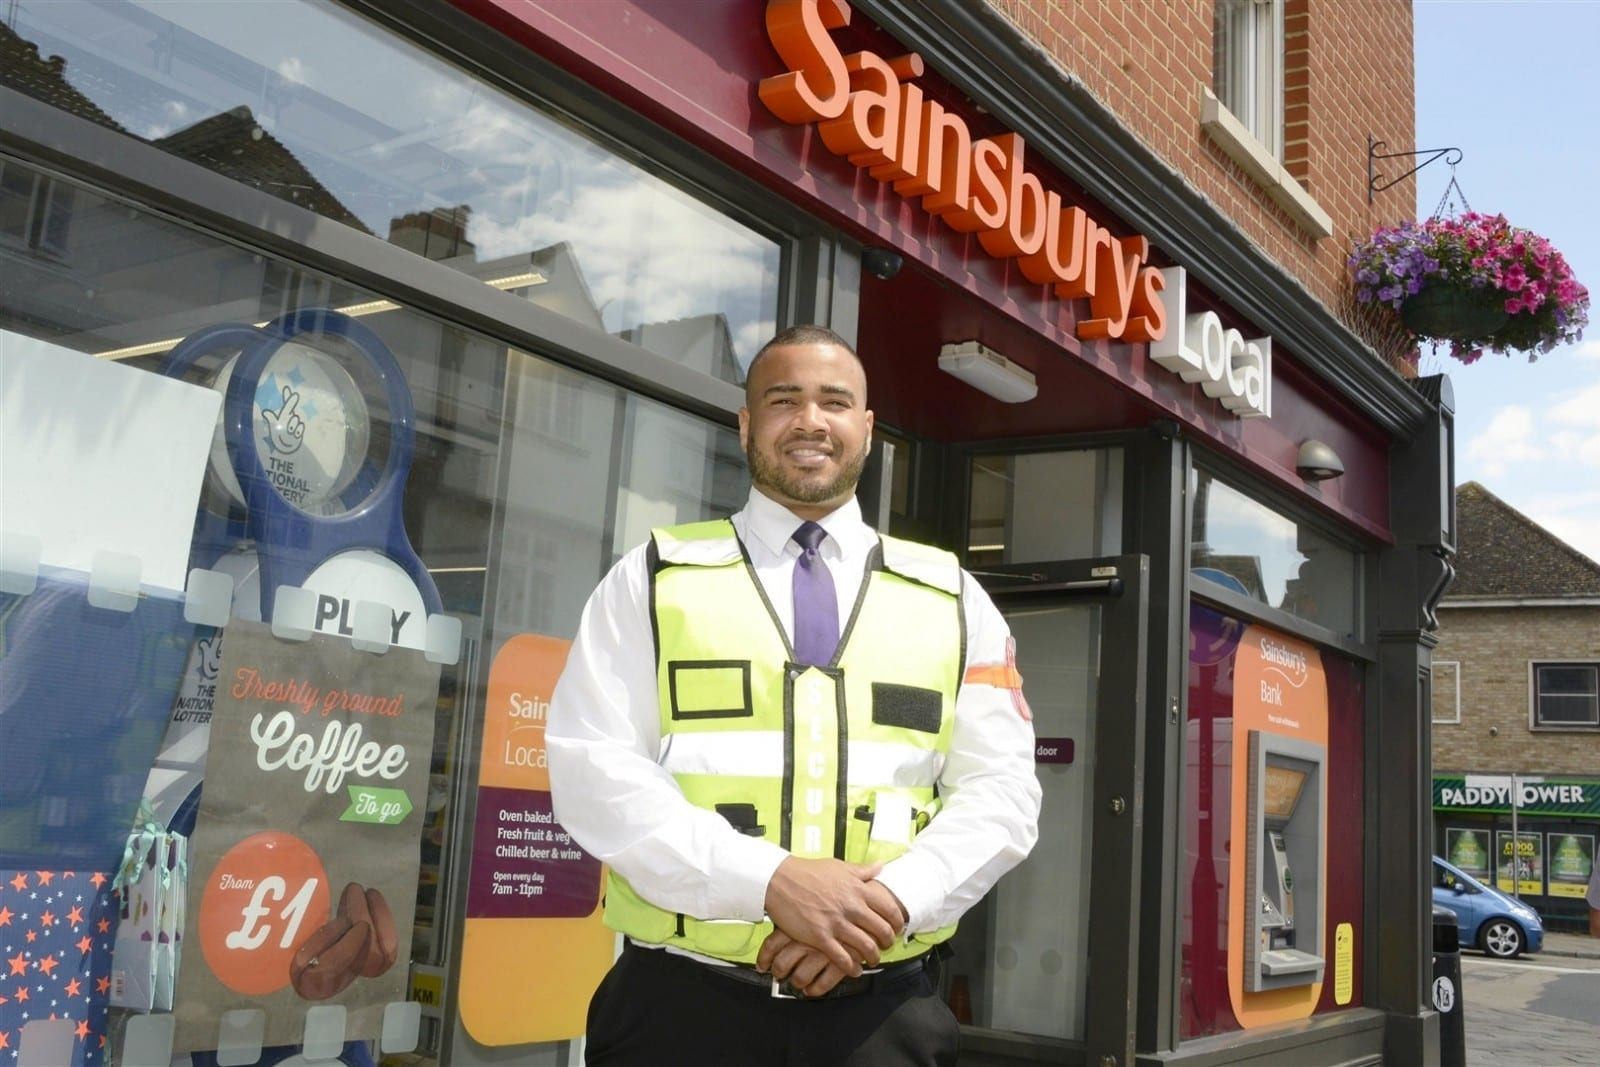 Man Dubbed The Kindest Security Guard In The UK Because He Regularly Helps Elderly People With Their Shopping